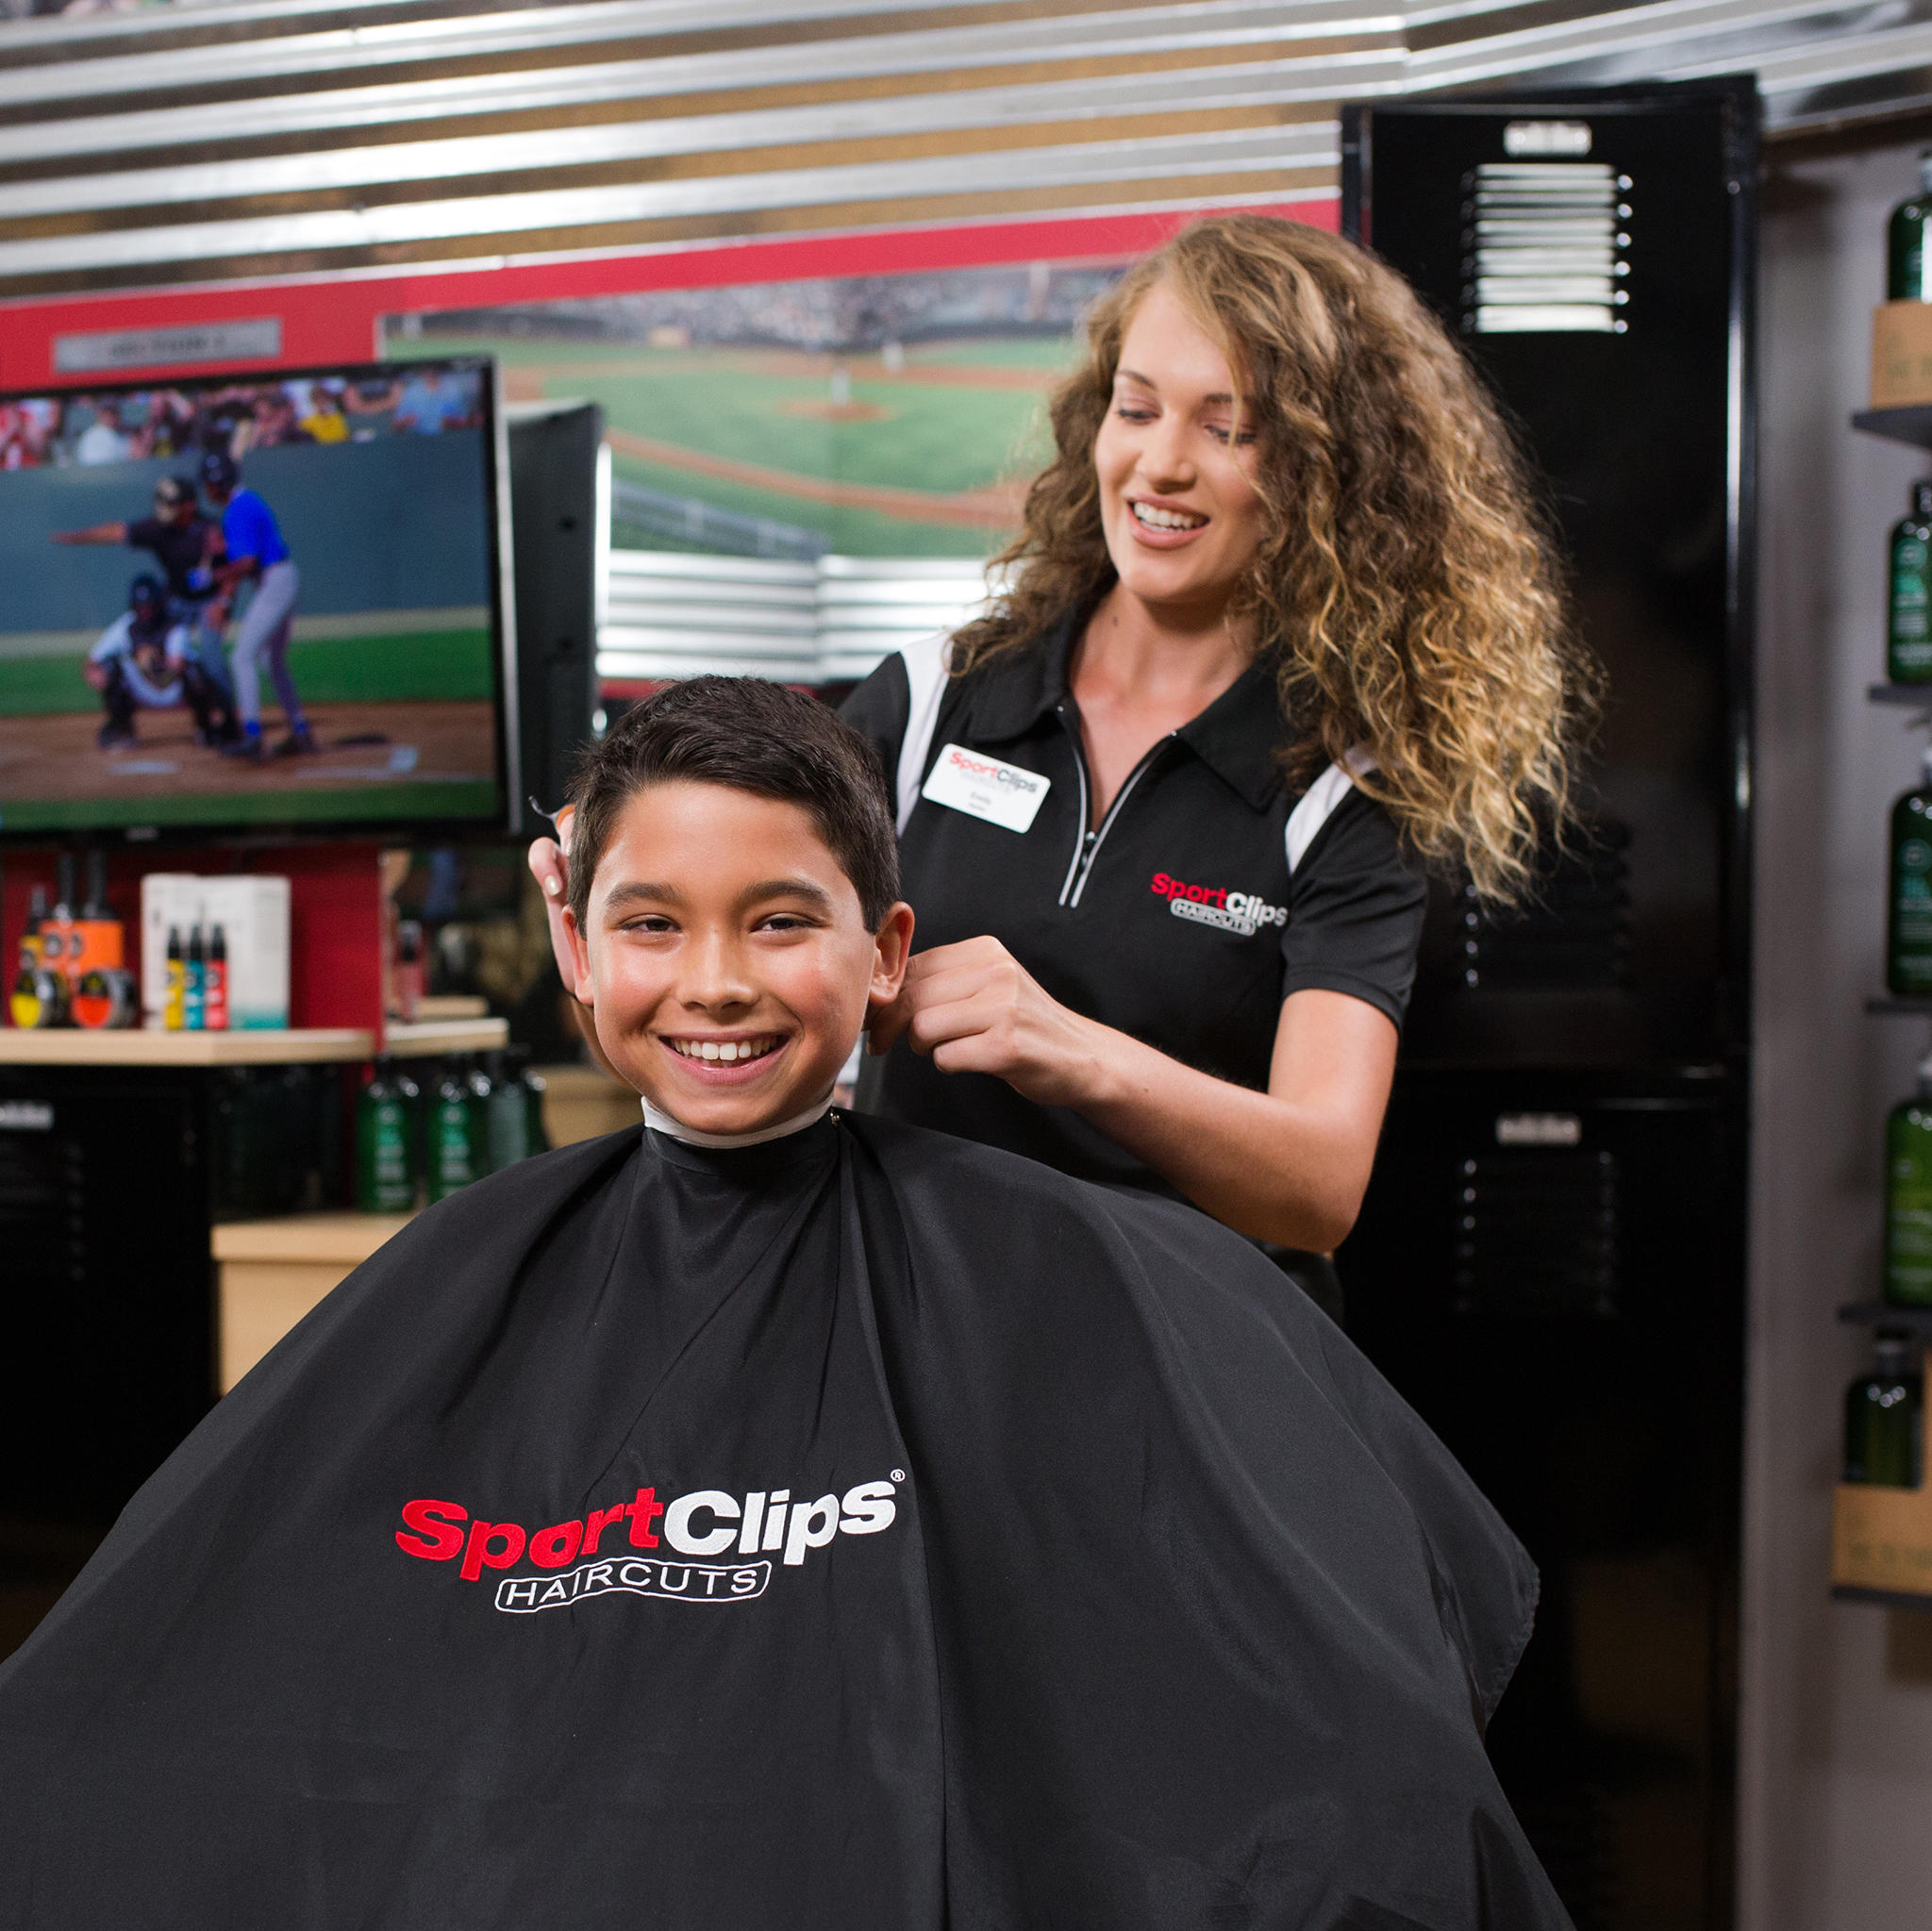 Sport Clips Haircuts of North Gate image 3